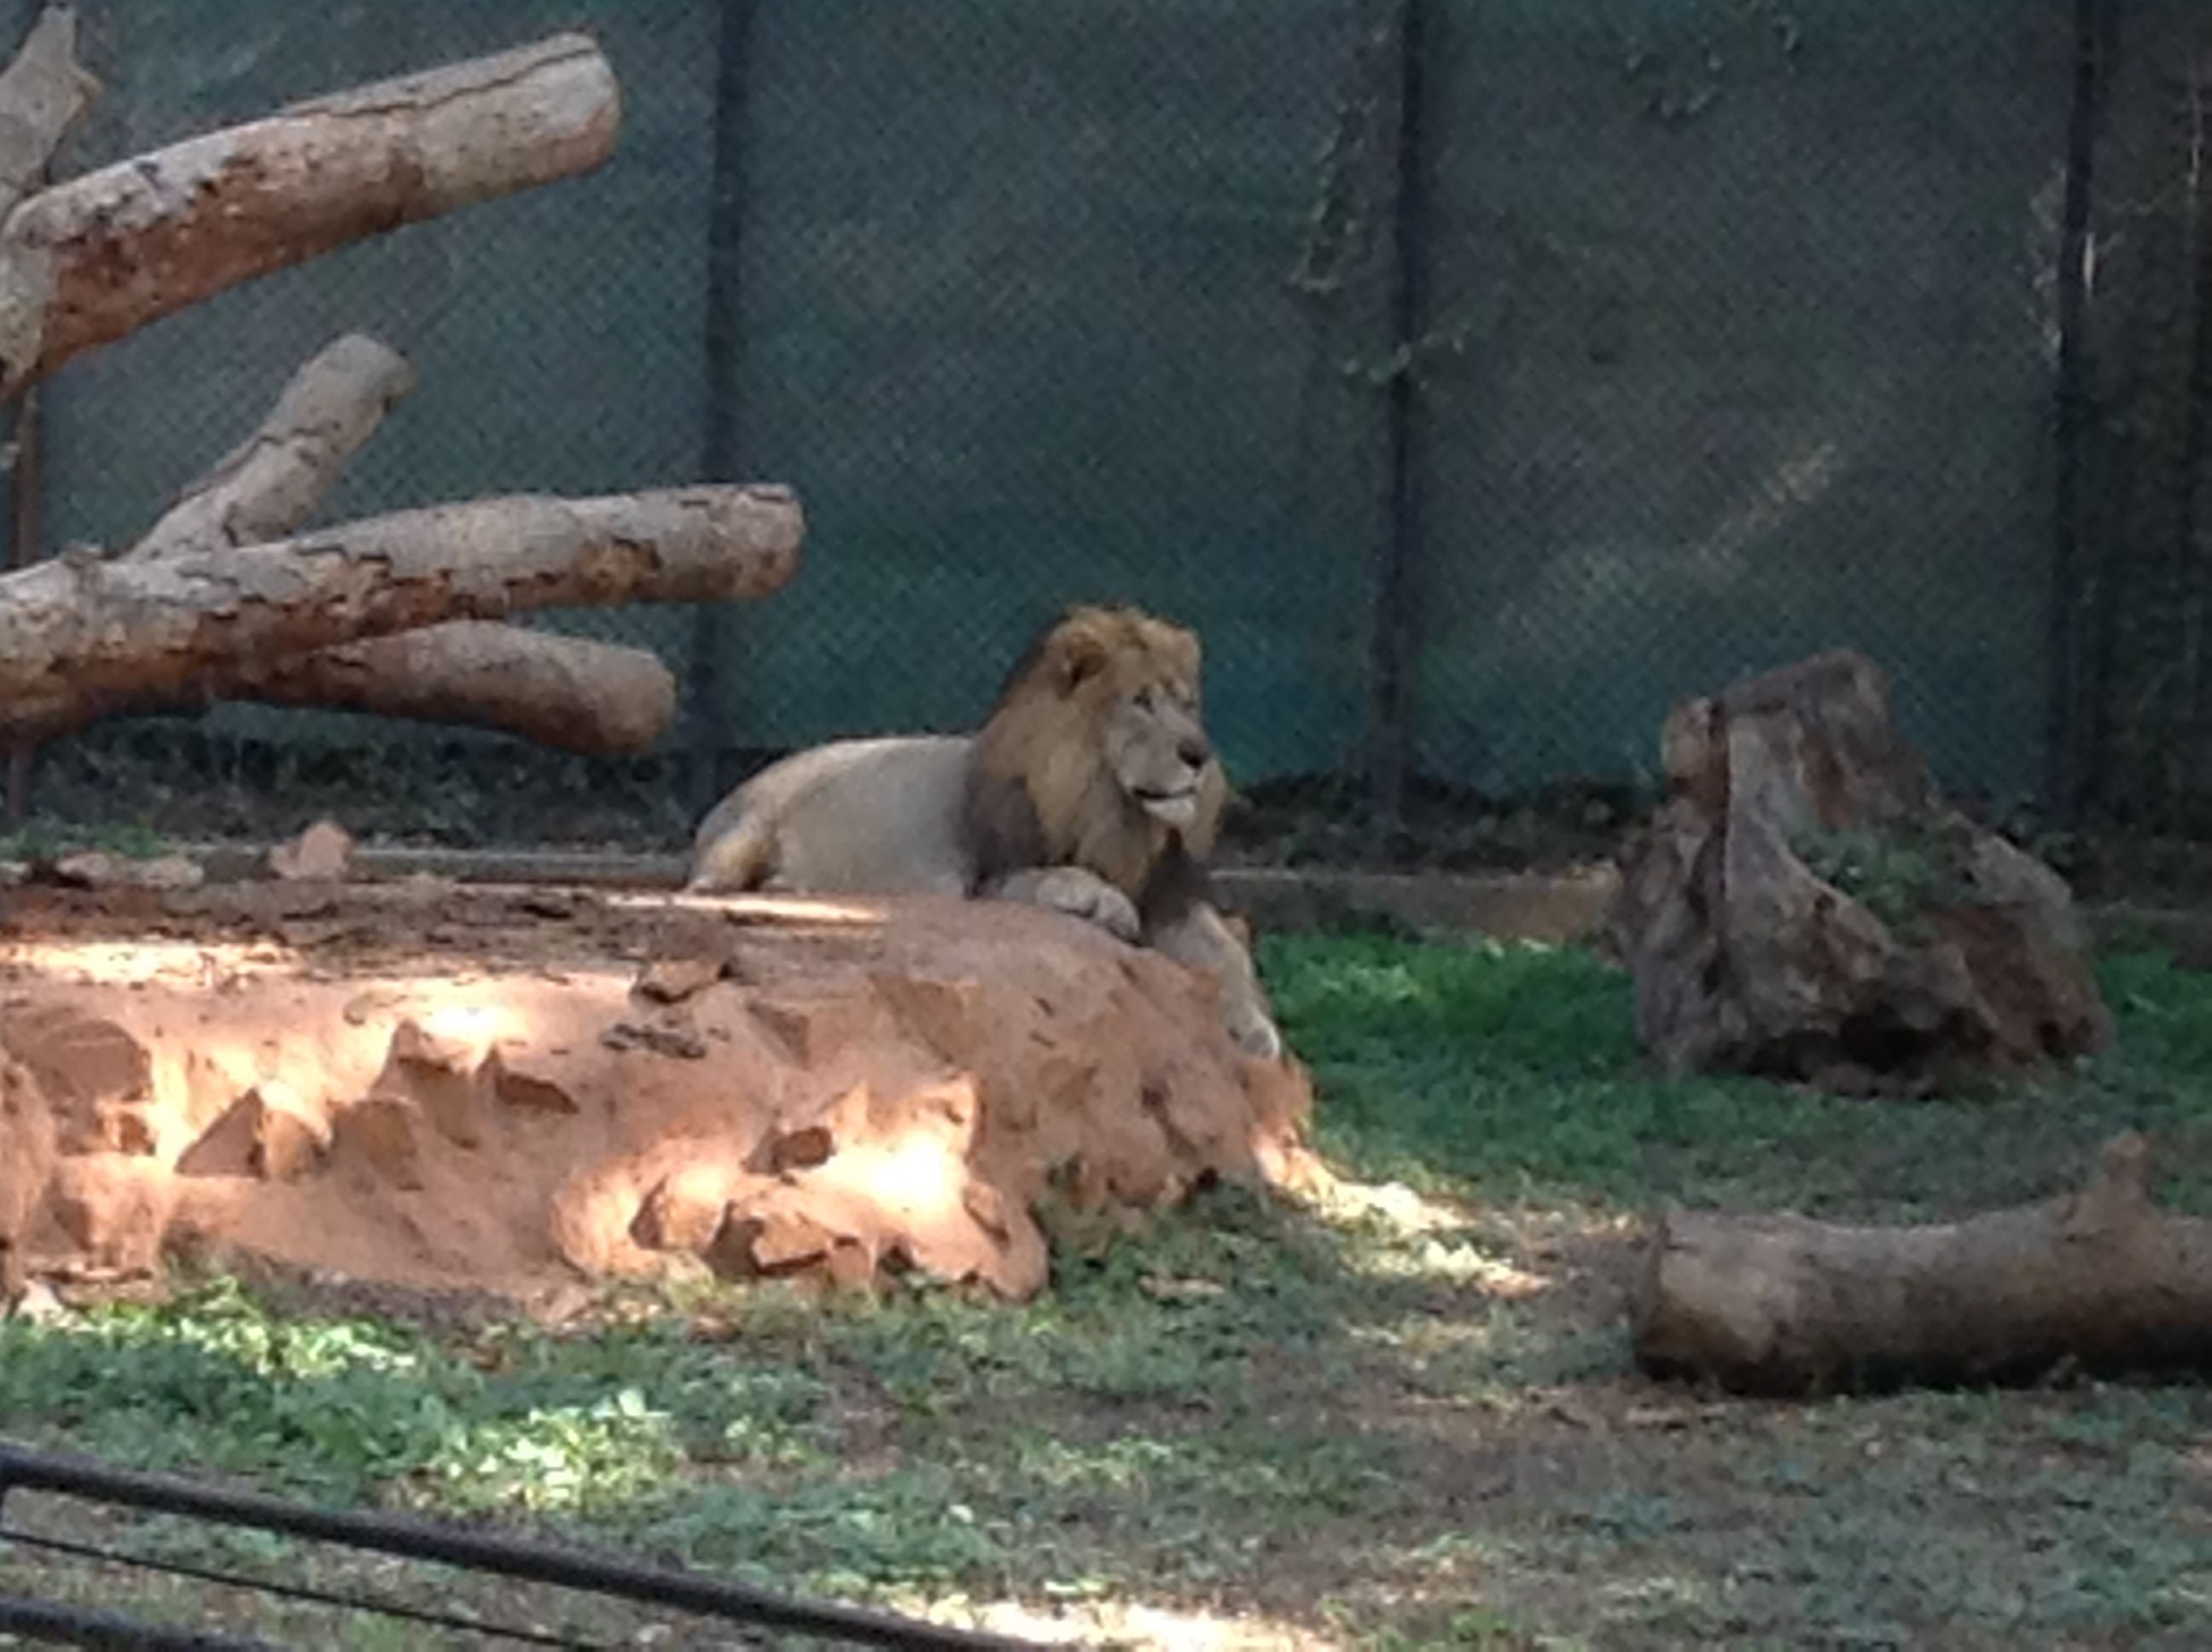 King Of The Jungle 1 Mysore Zoo Officially The Sri Chamarajendra Zoological Gardens Mysore Zoo Zoological Garden Zoo